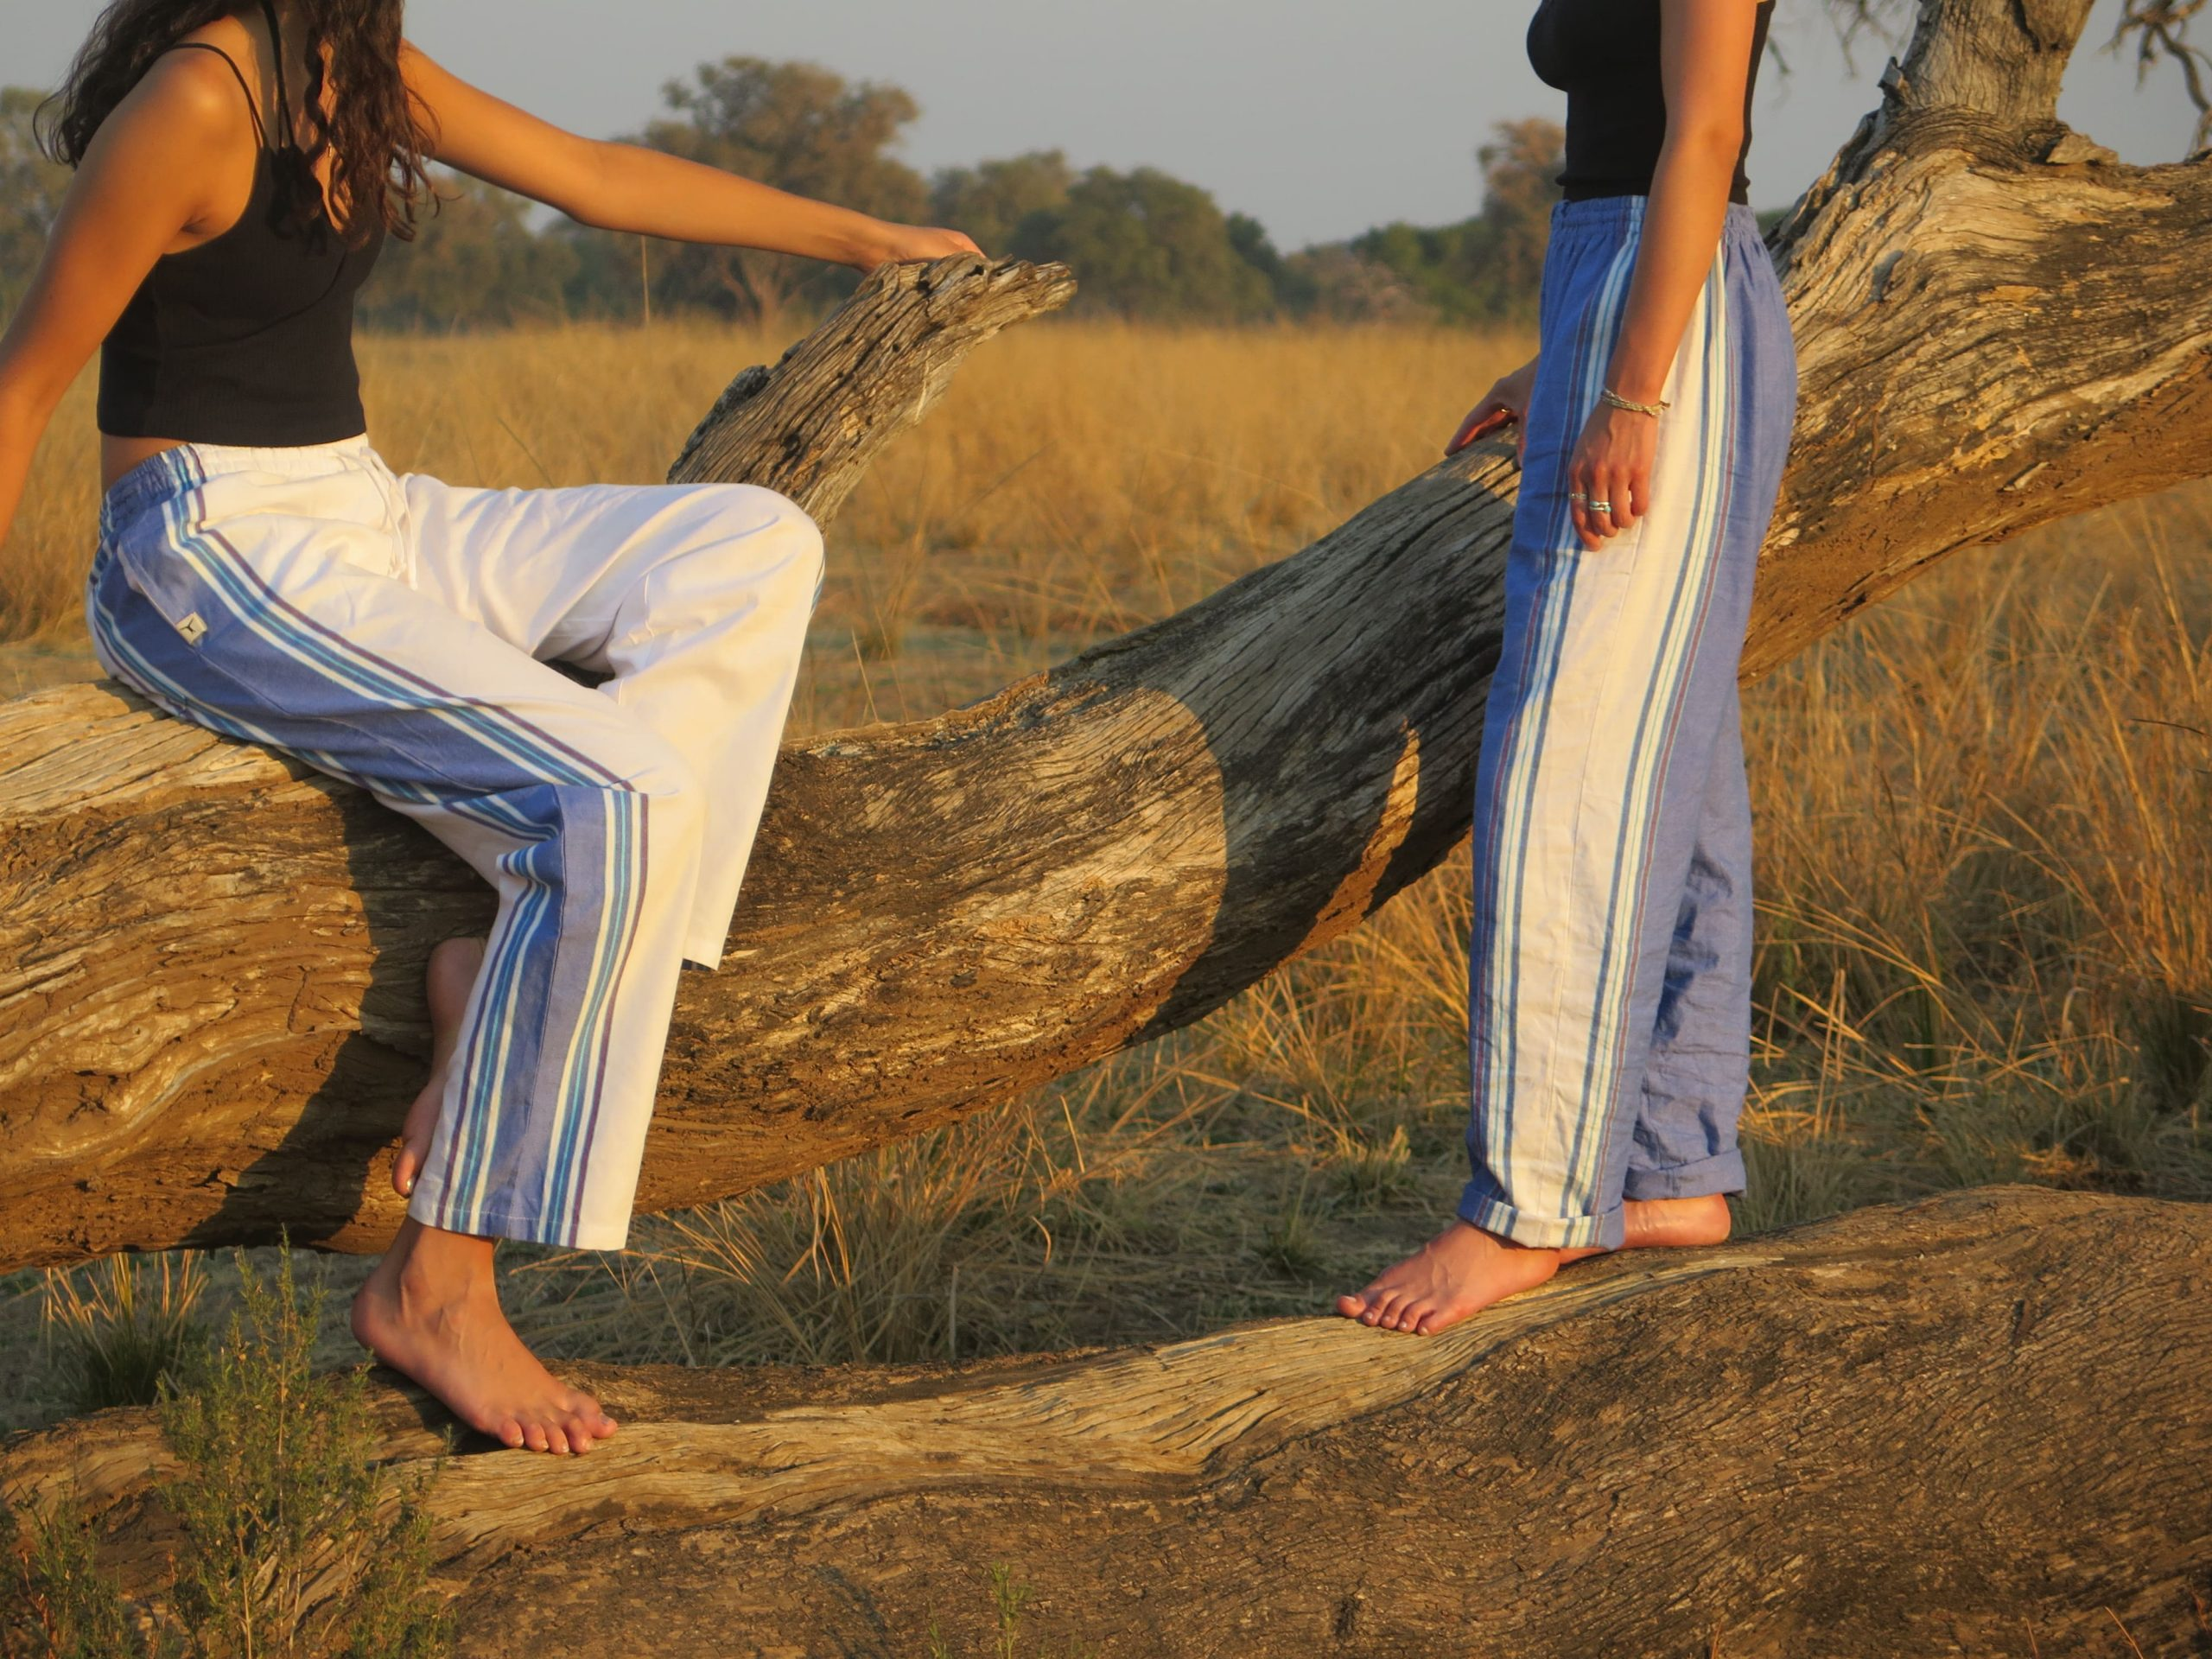 Two barefoot girls sitting and standing on a fallen log wearing sustainable blue and white kikoy pants